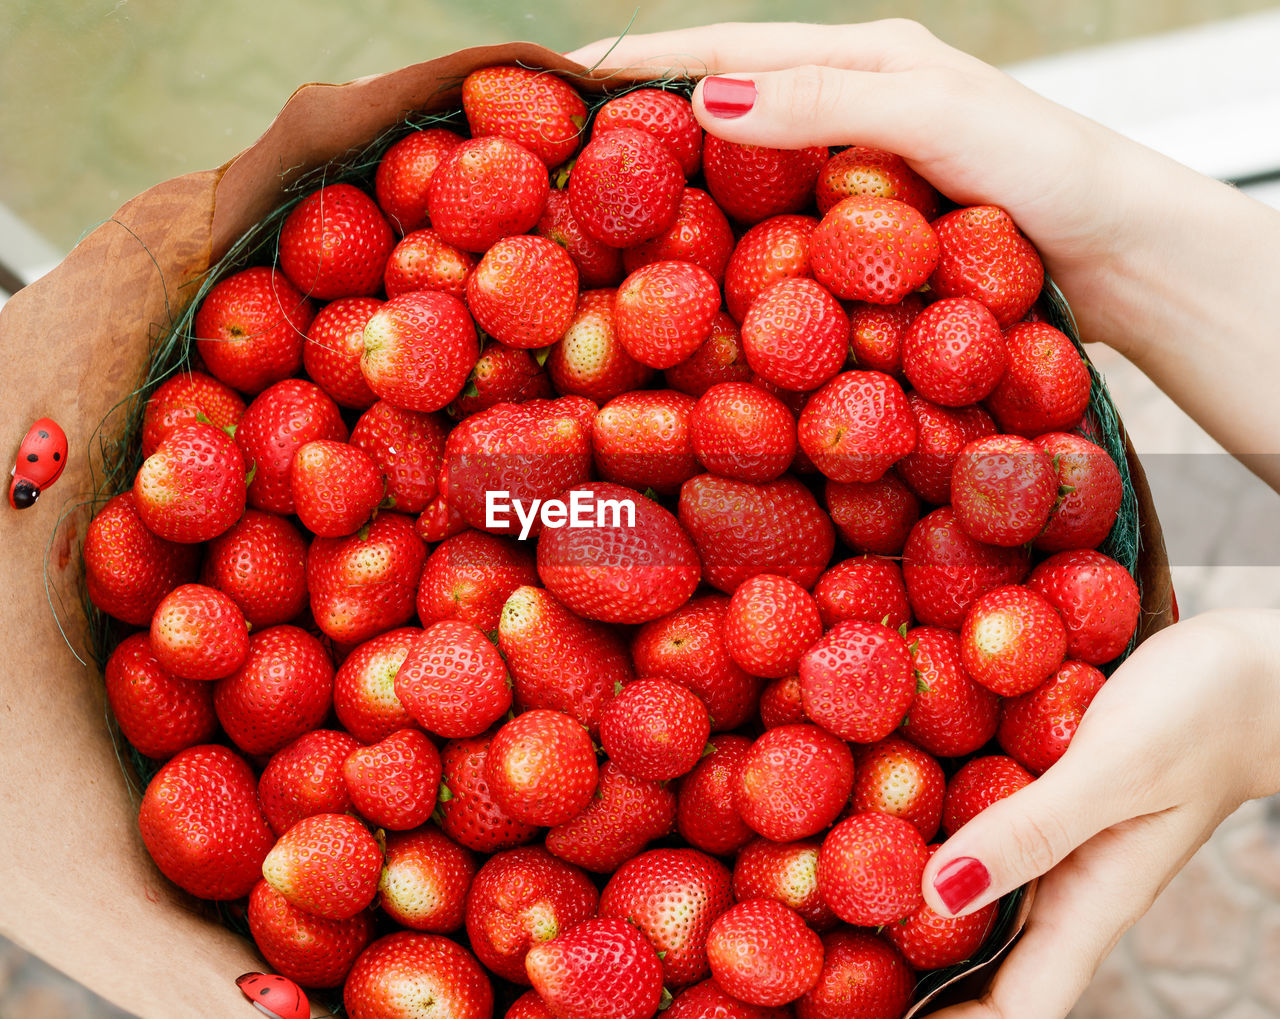 Cropped hands of woman holding strawberries in container